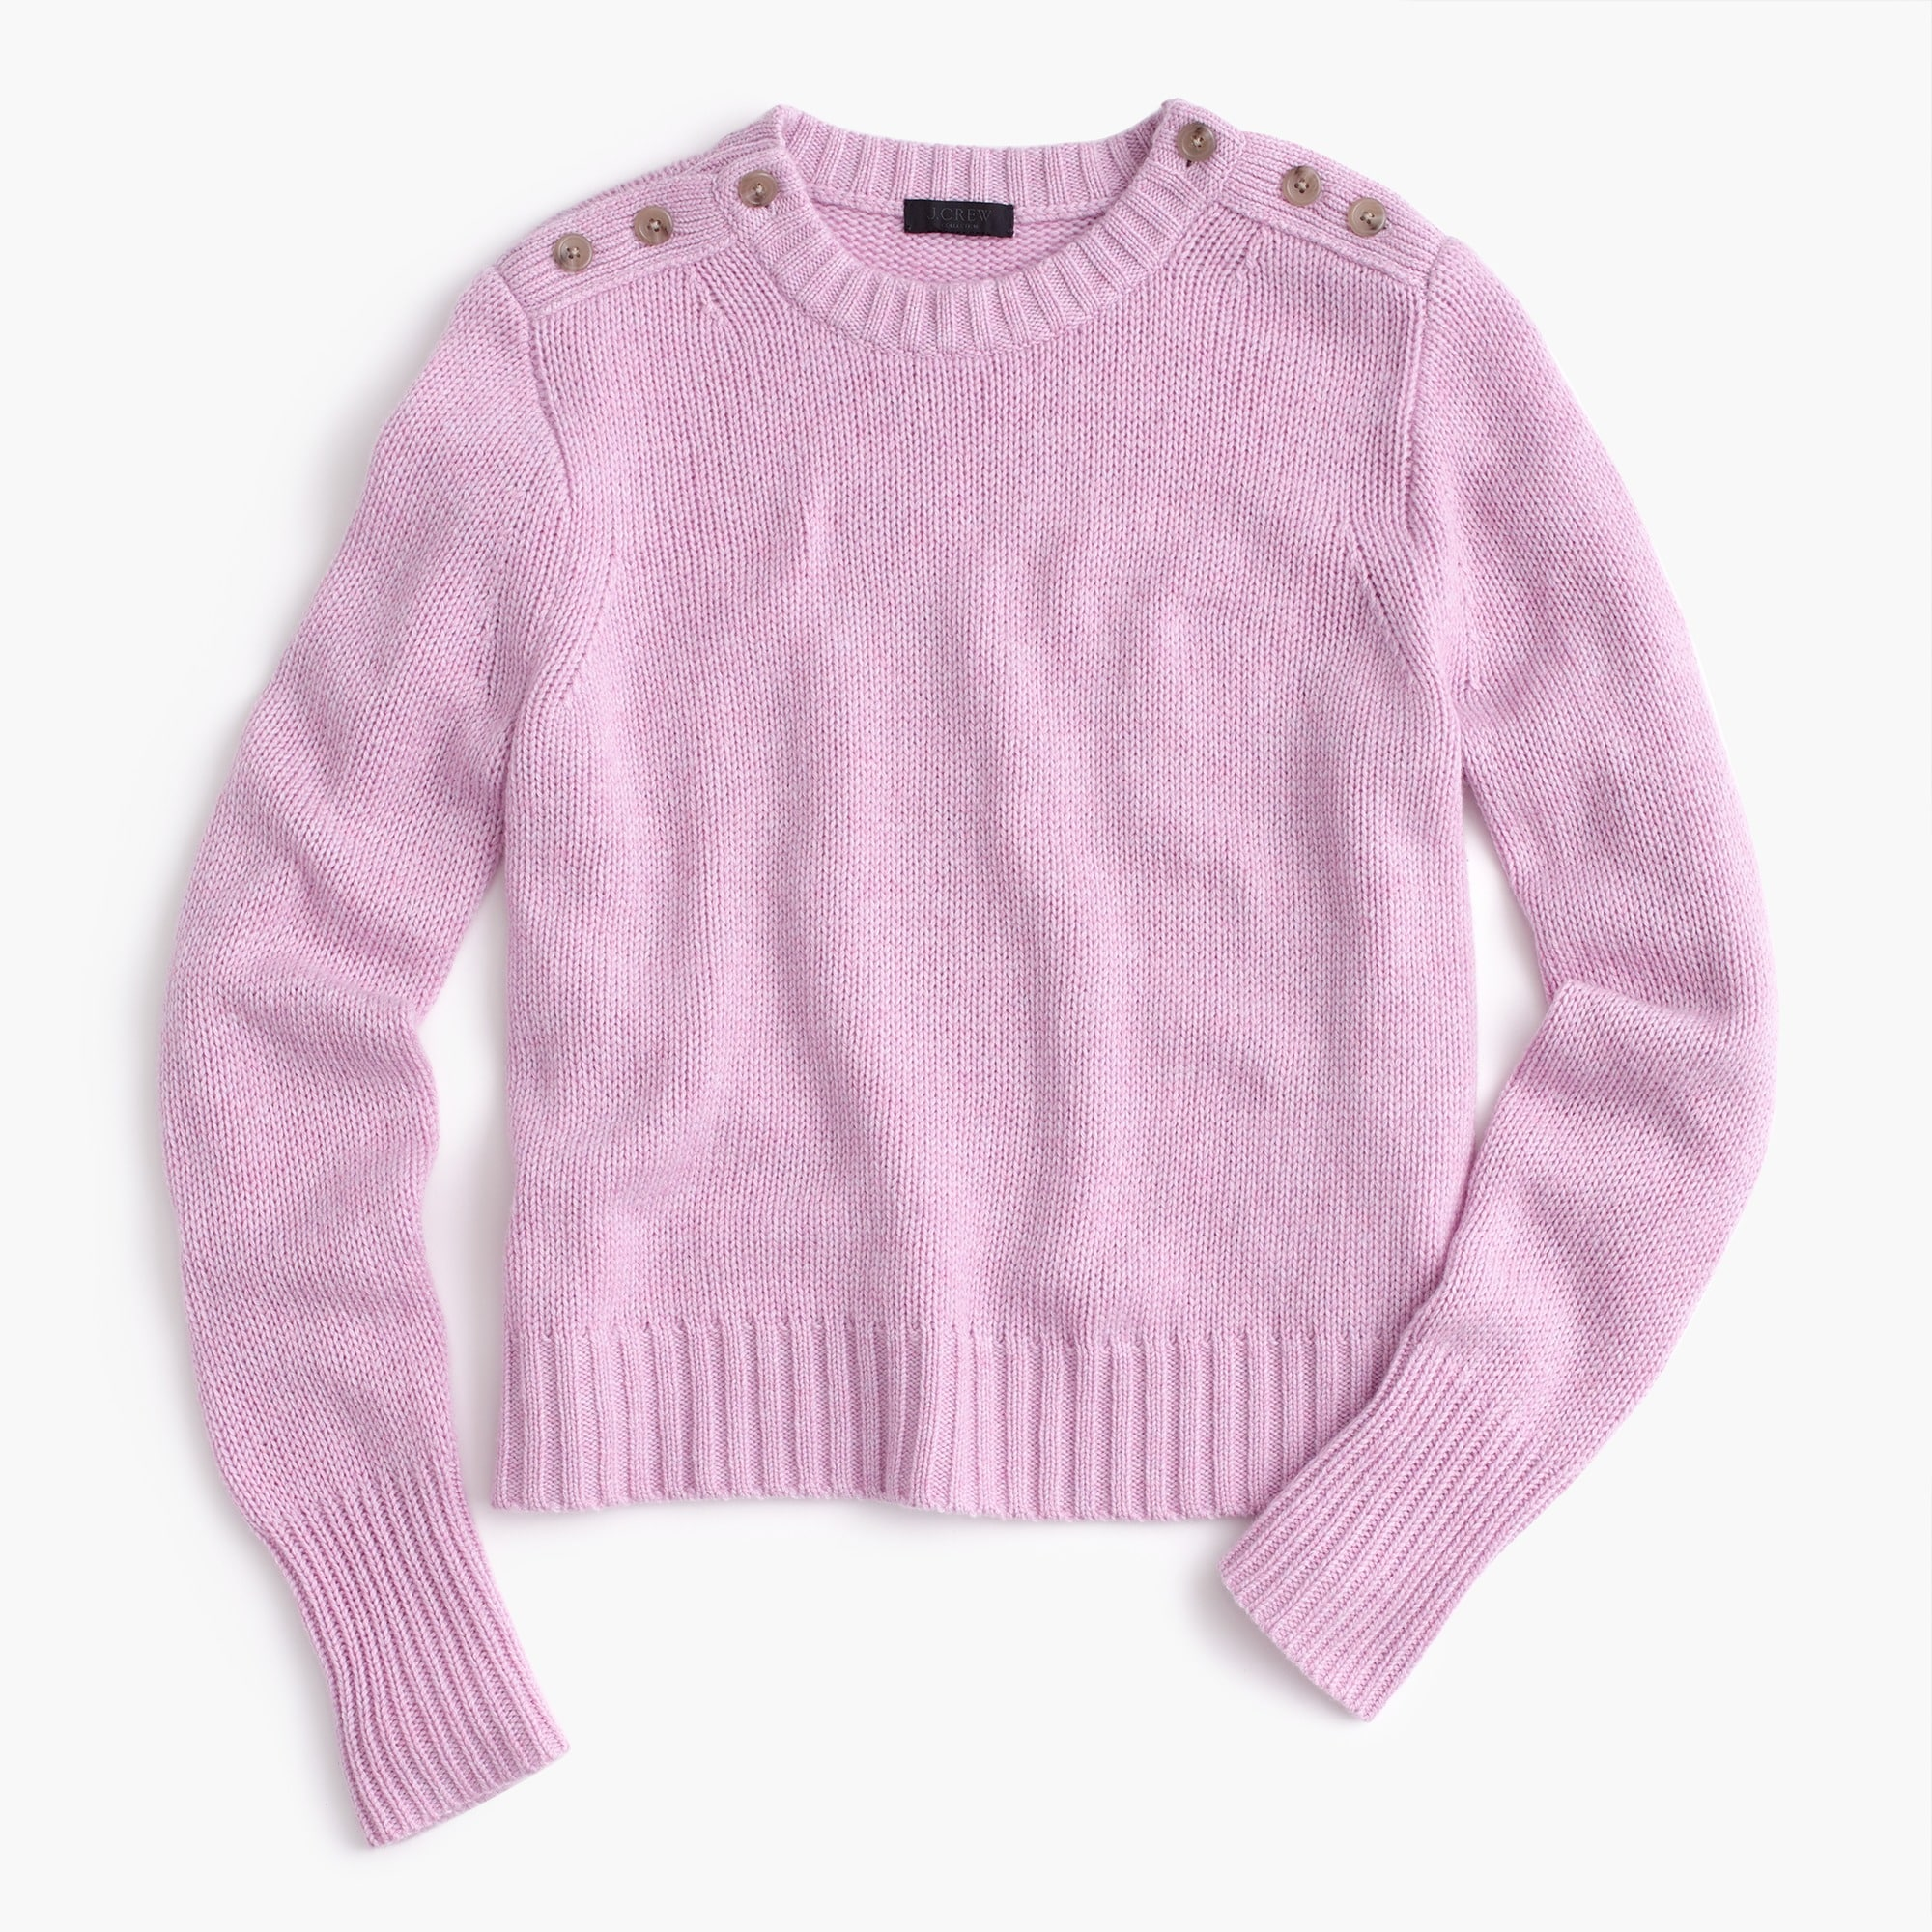 Image 2 for Cropped sweater in everyday cashmere